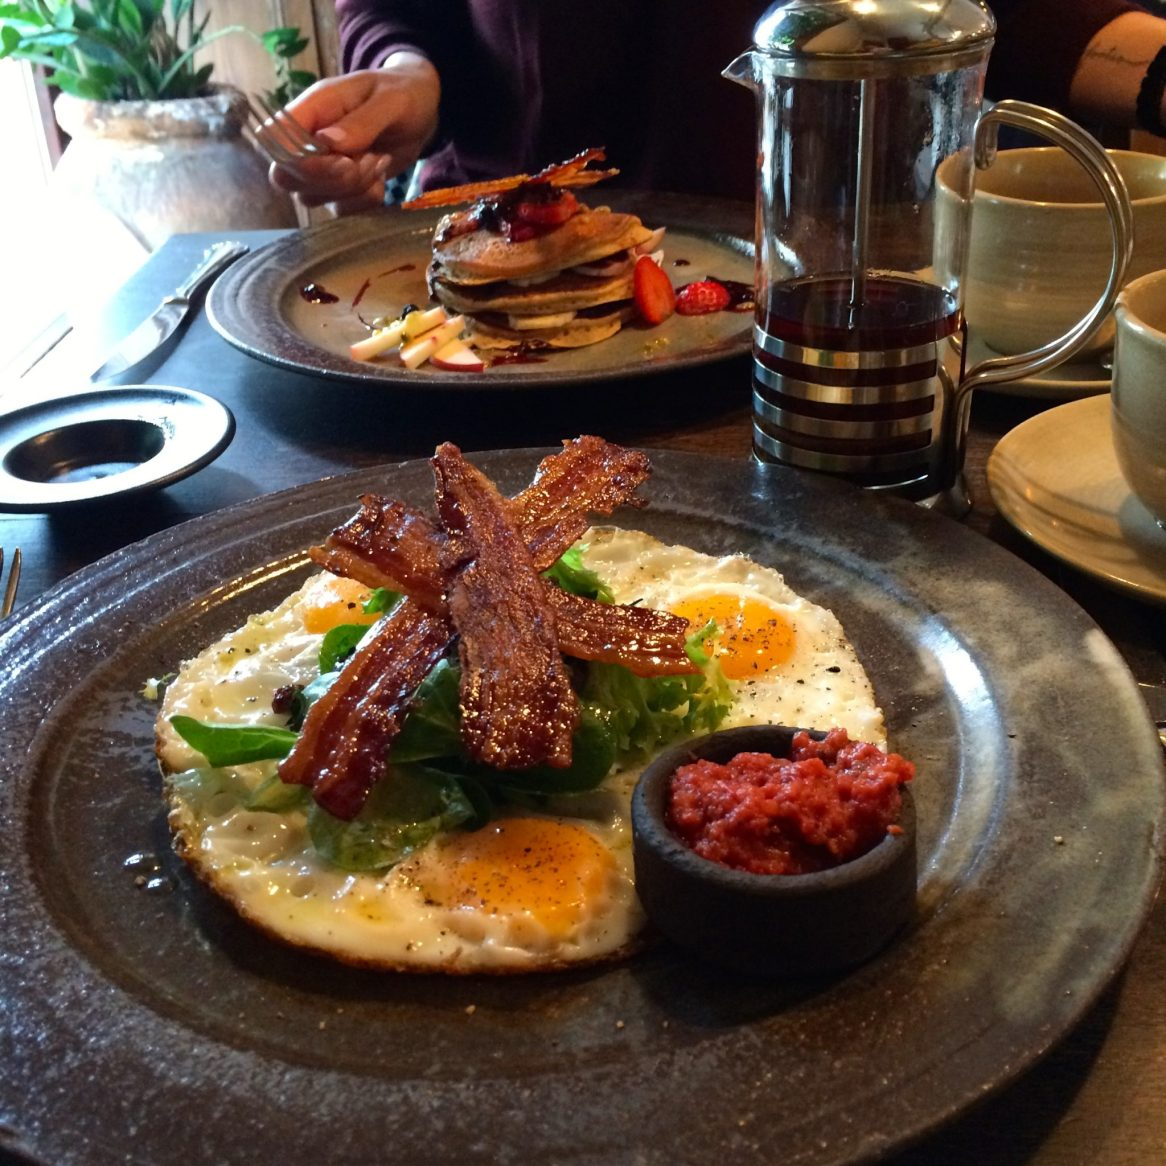 Plate of eggs and bacon at Sauvage